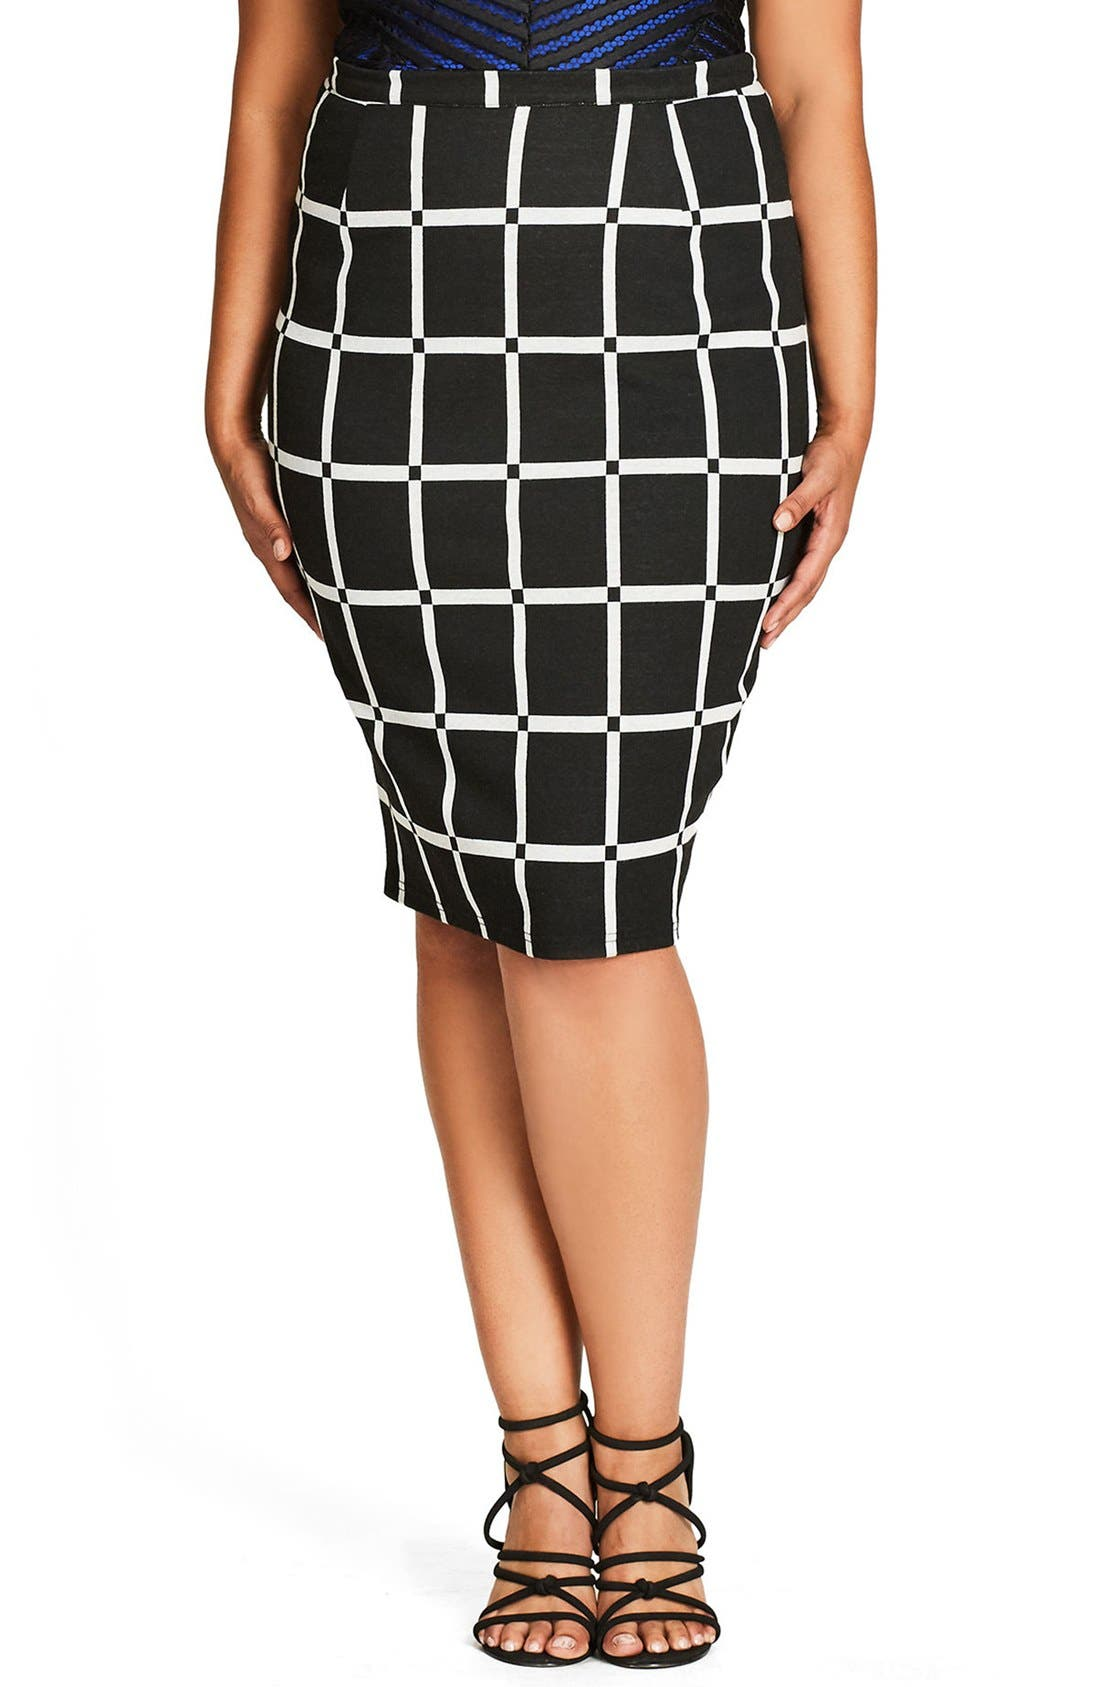 CITY CHIC Vintage Chic Pencil Skirt